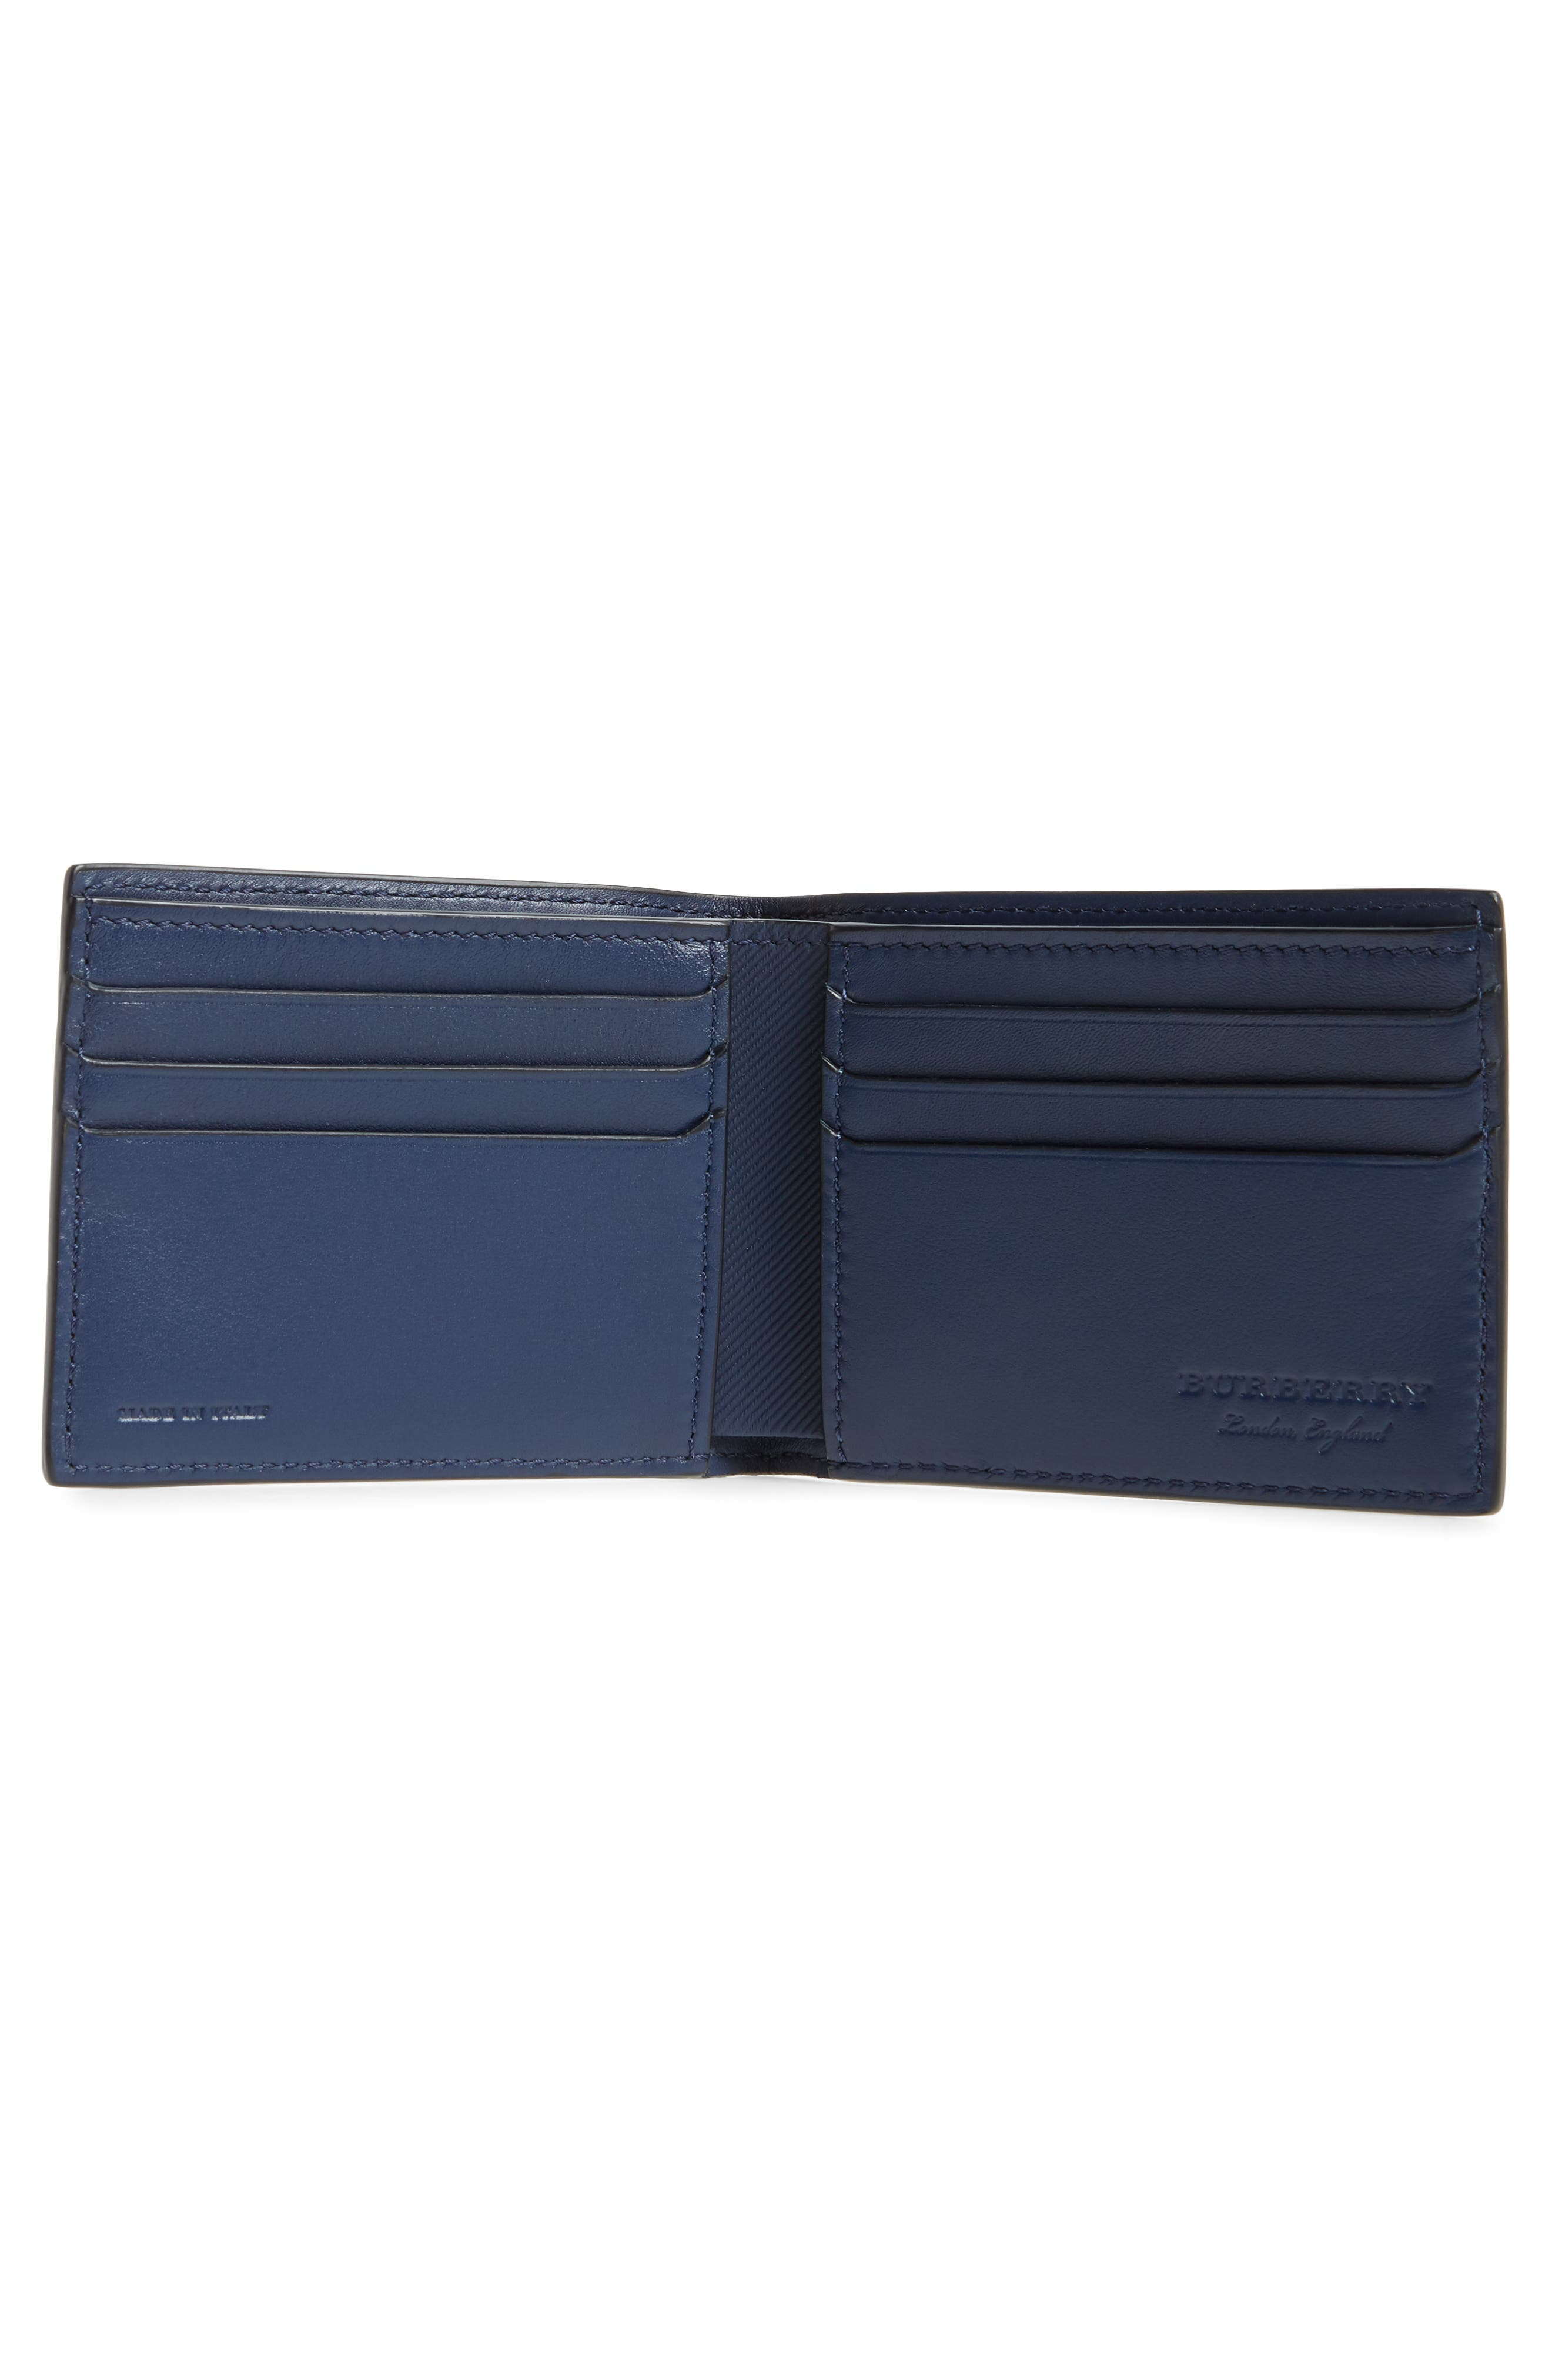 Alternate Image 2  - Burberry Trench Leather Wallet